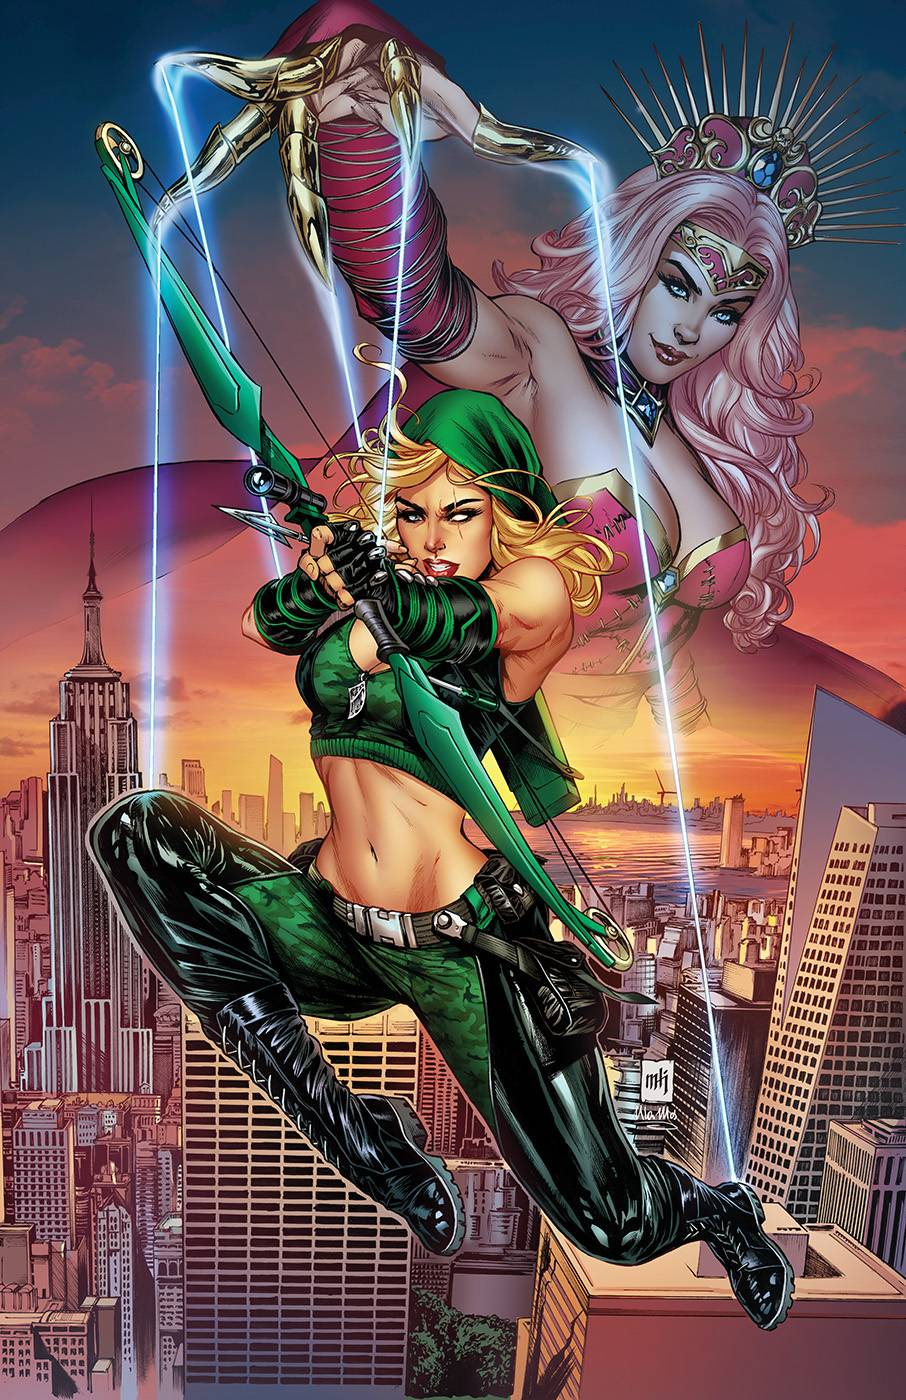 ROBYN HOOD JUSTICE #5 (OF 6) CVR A KROME